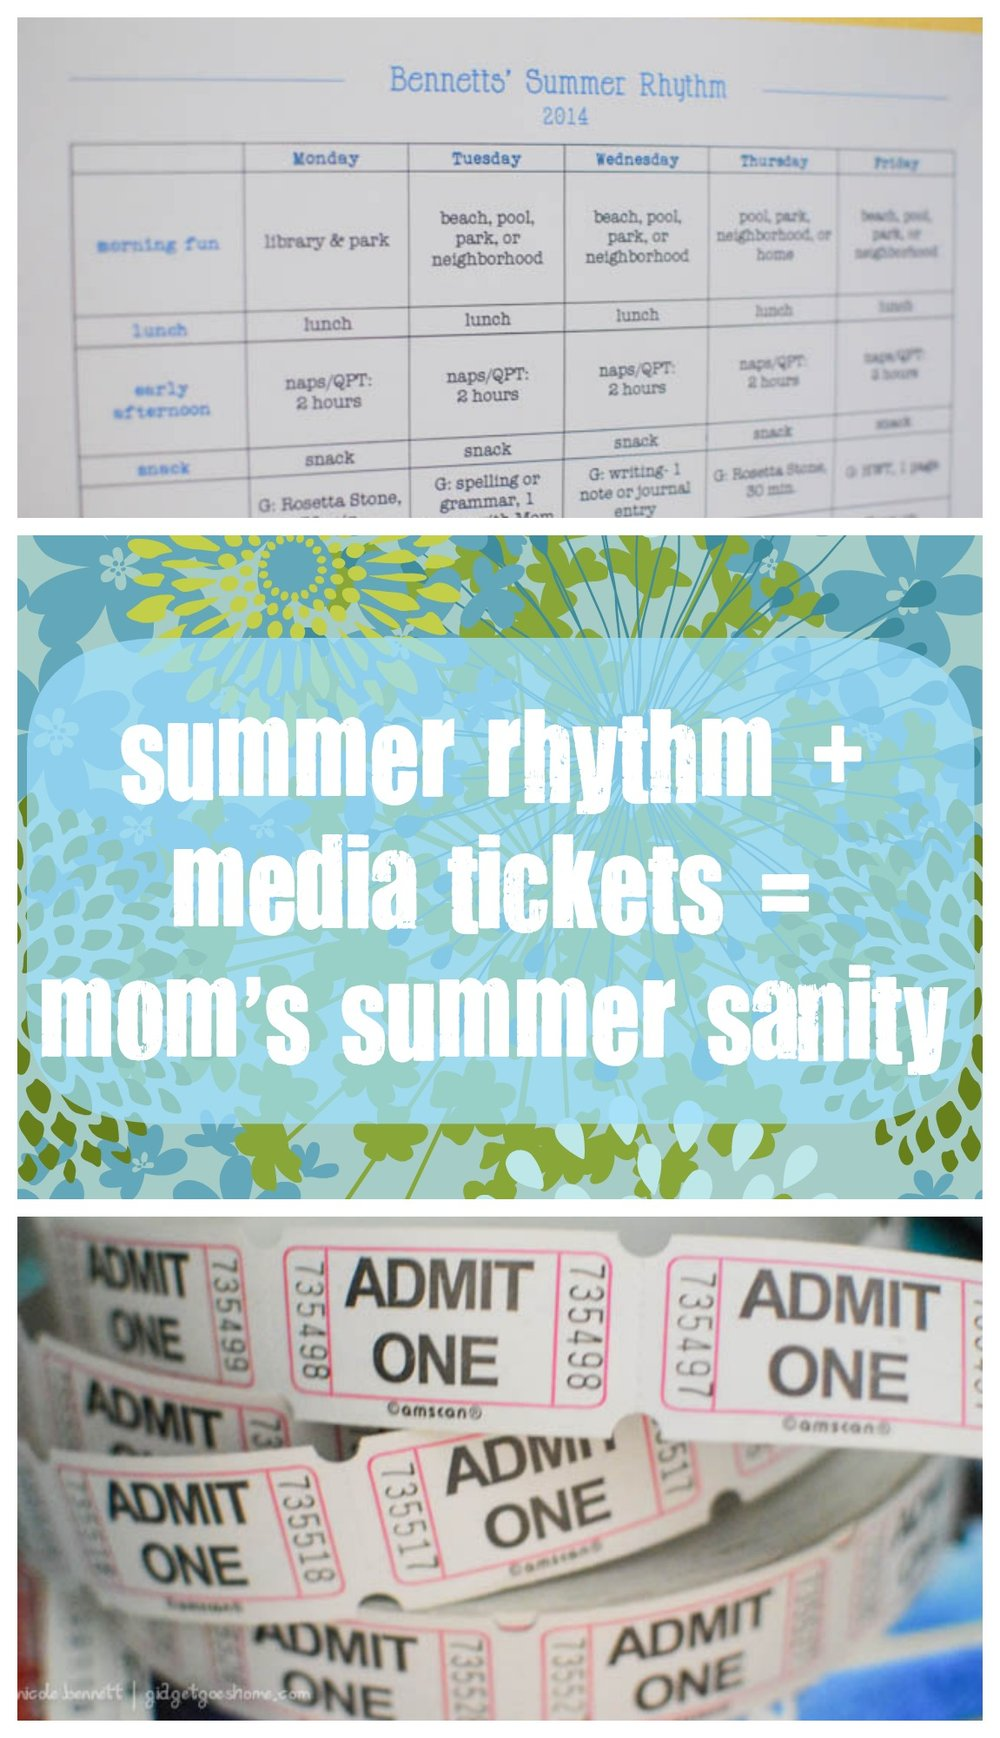 summer-sanity-with-a-rhythm-and-media-tickets.jpg